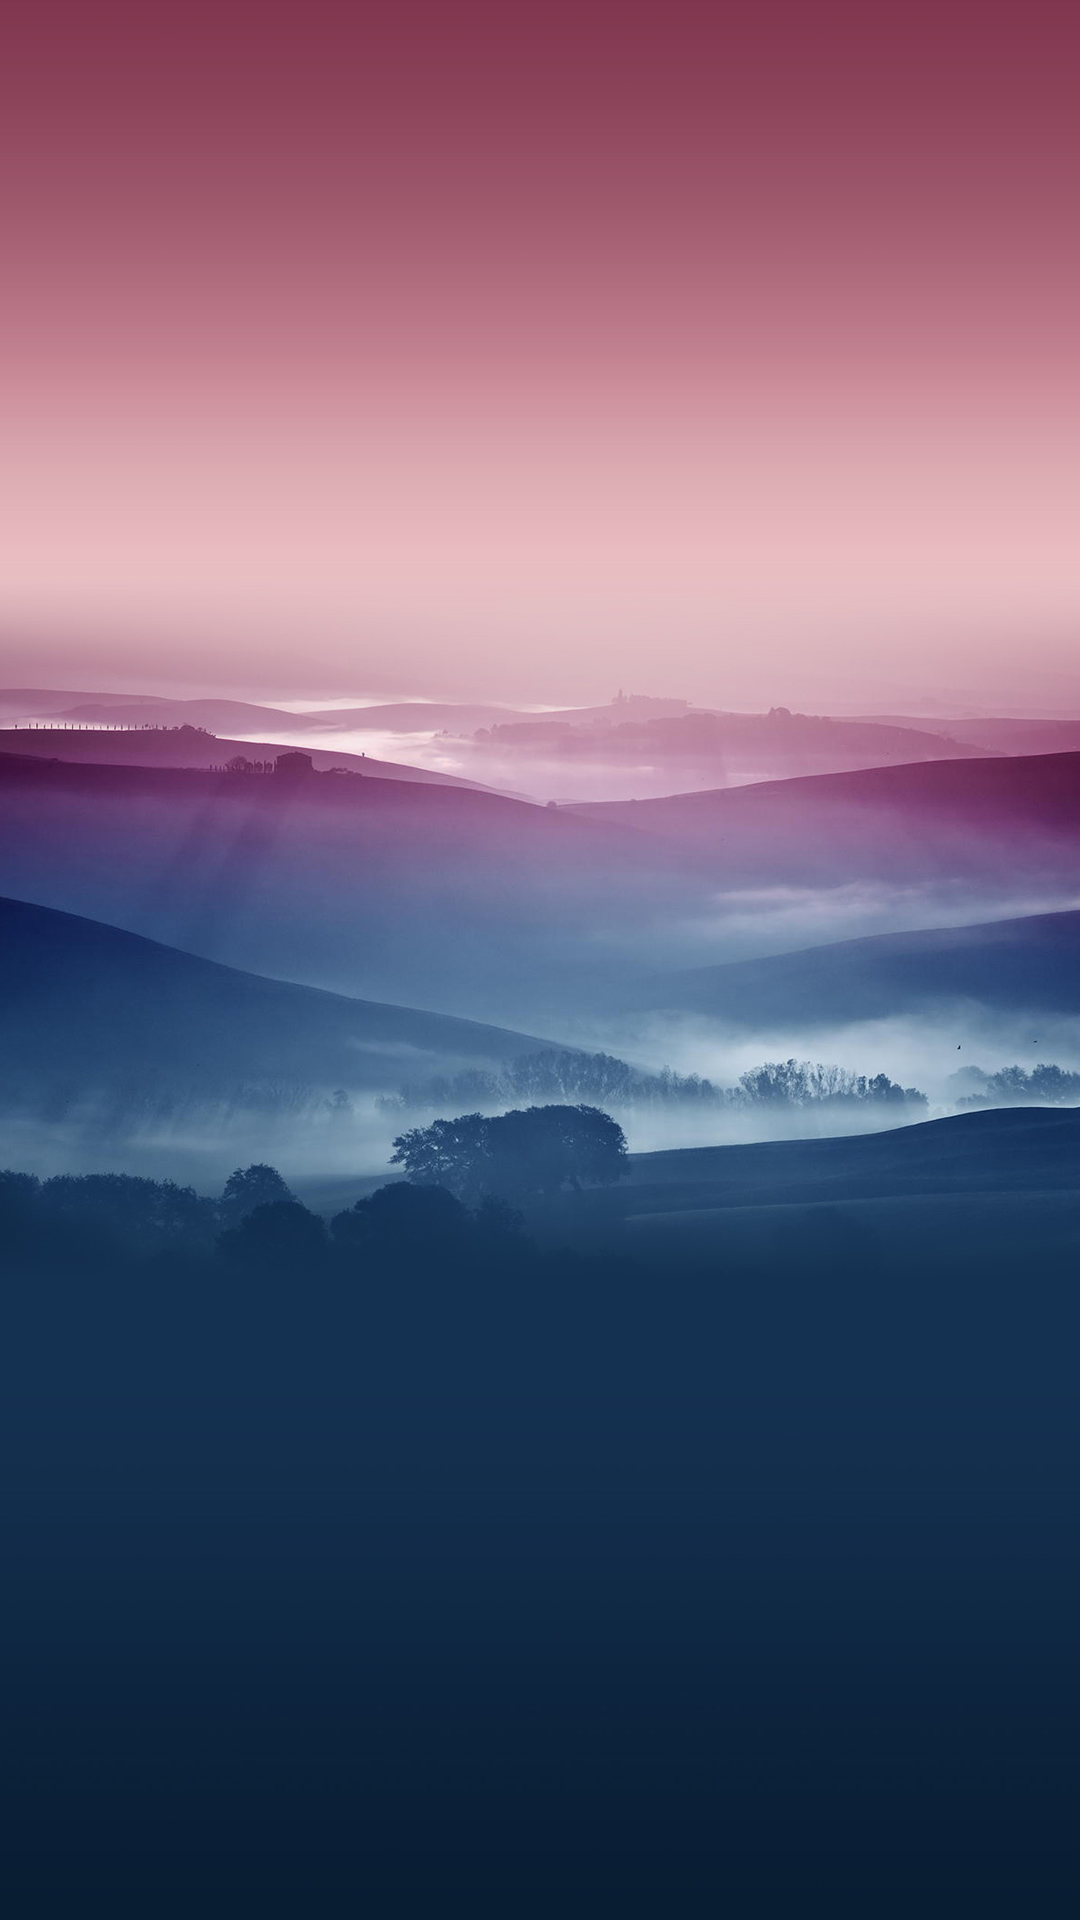 Hazy Nature iPhone 8 Wallpapers Download 1080x1920